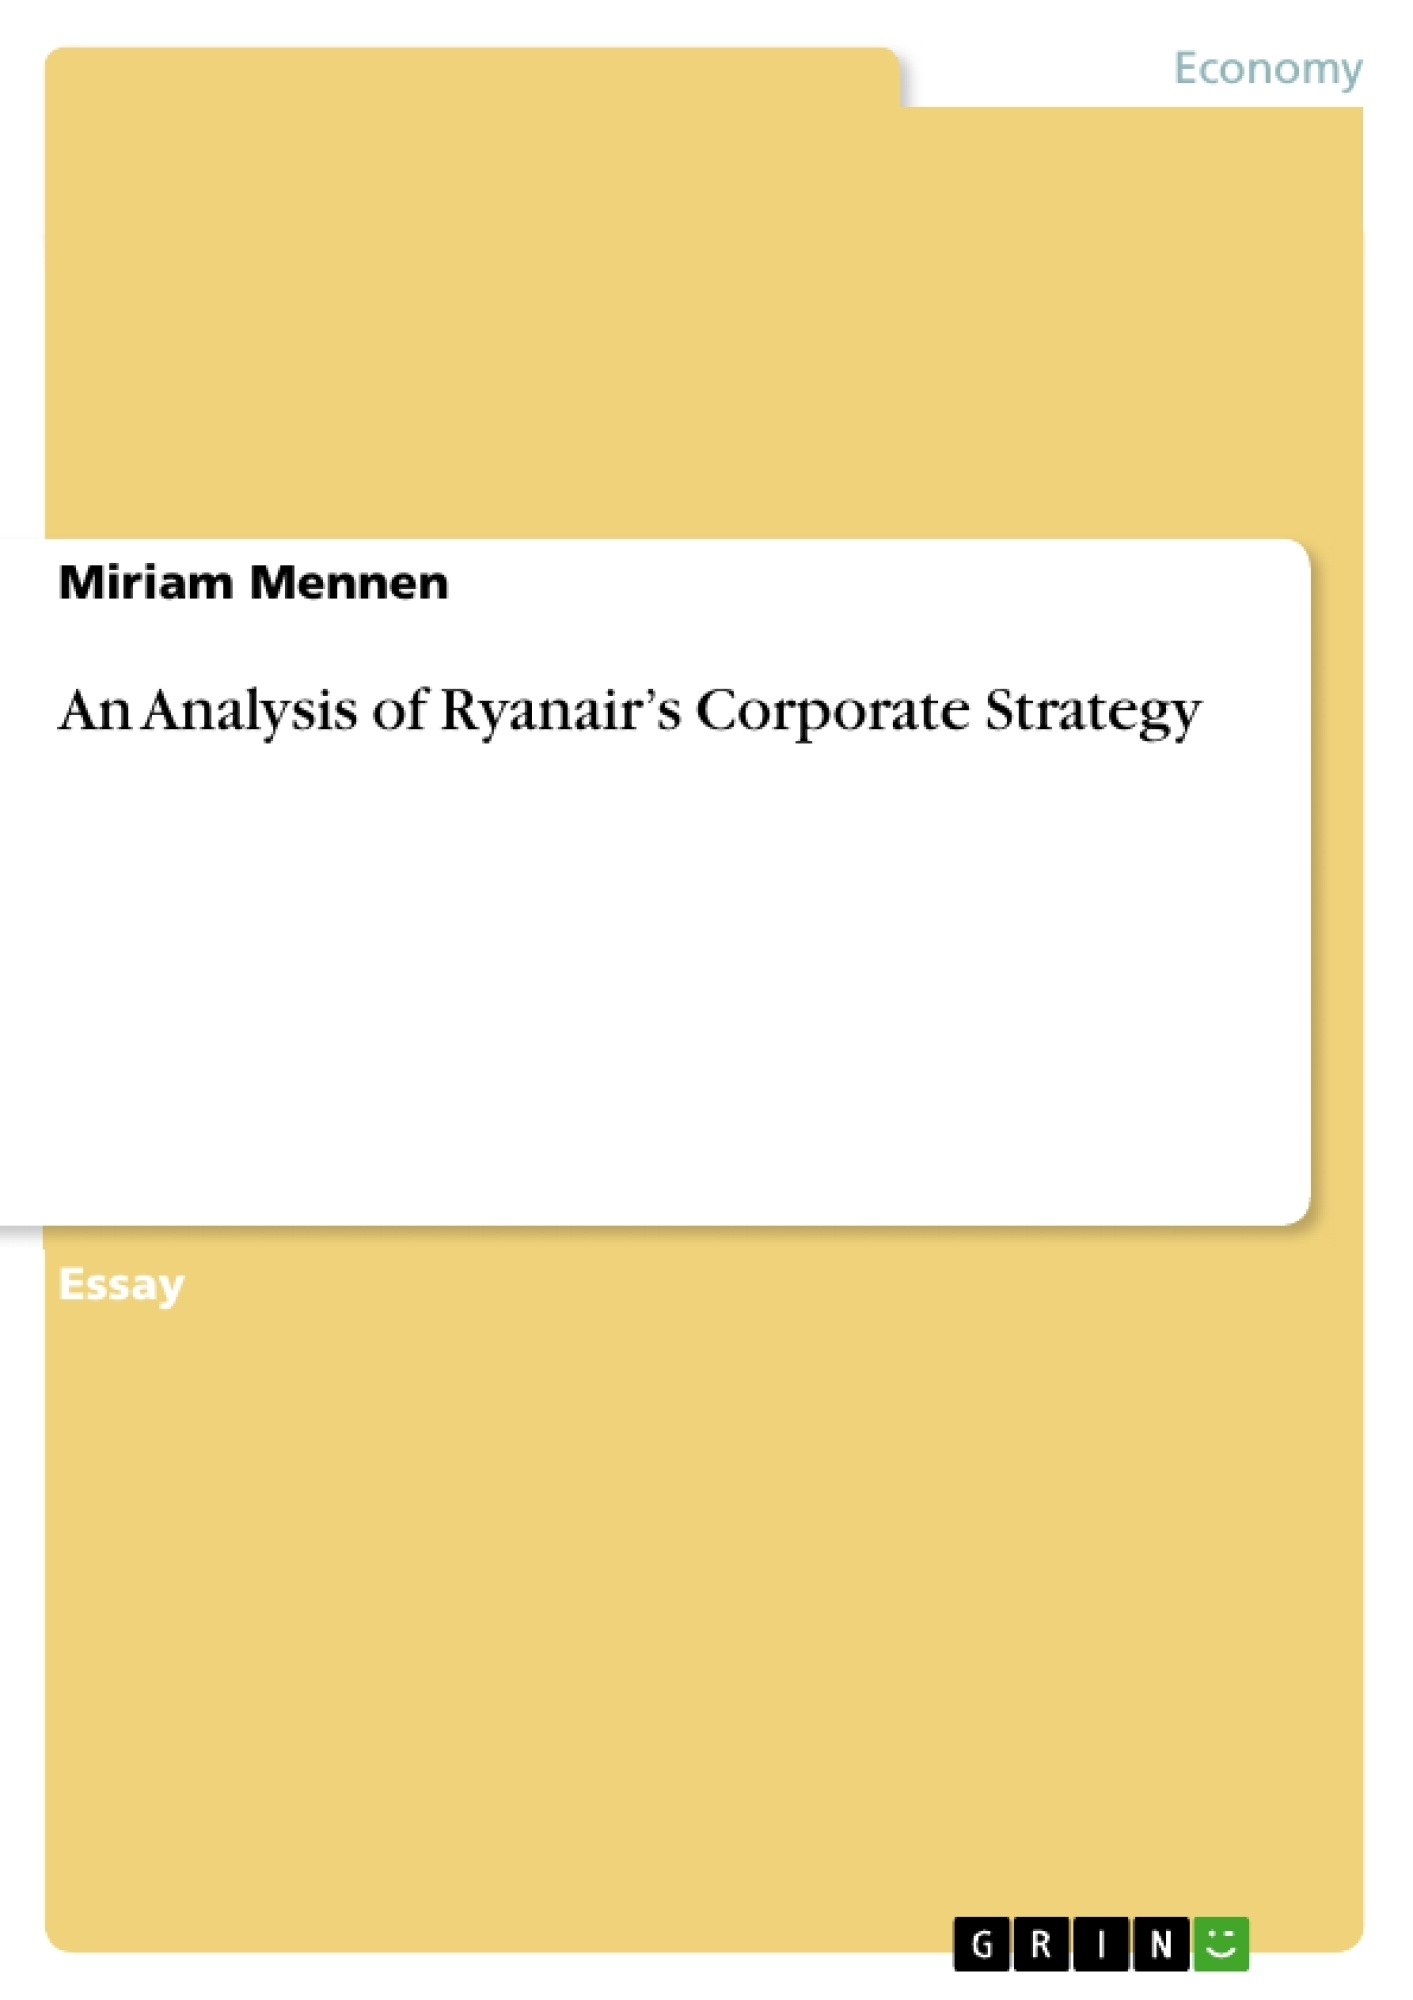 Title: An Analysis of Ryanair's Corporate Strategy